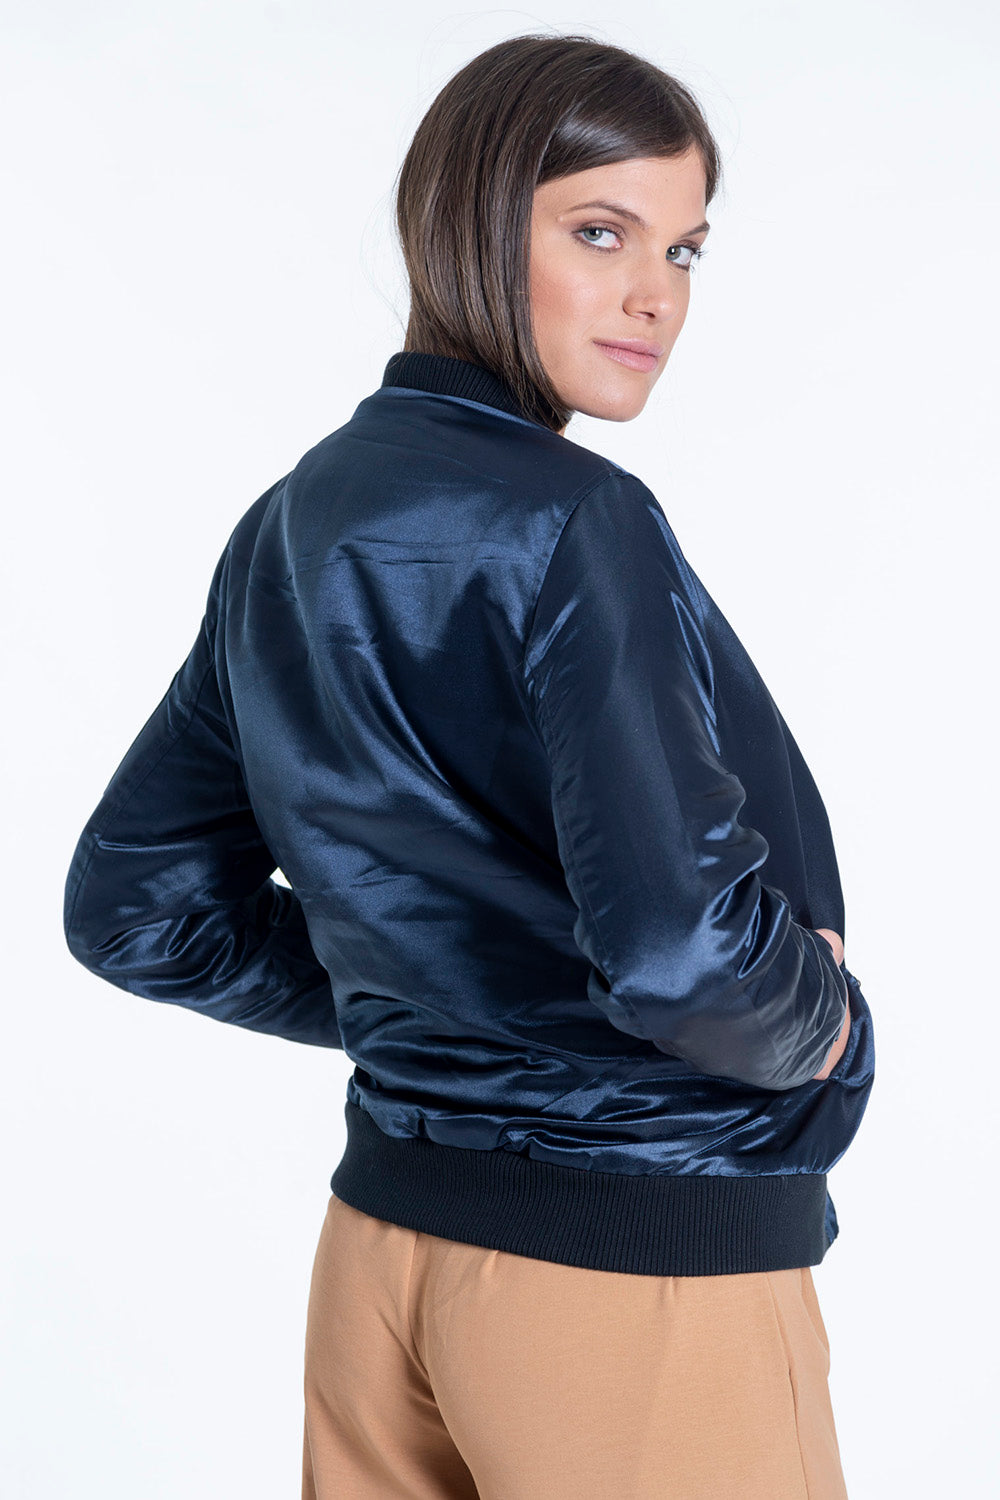 Padded jacket in metallic blue